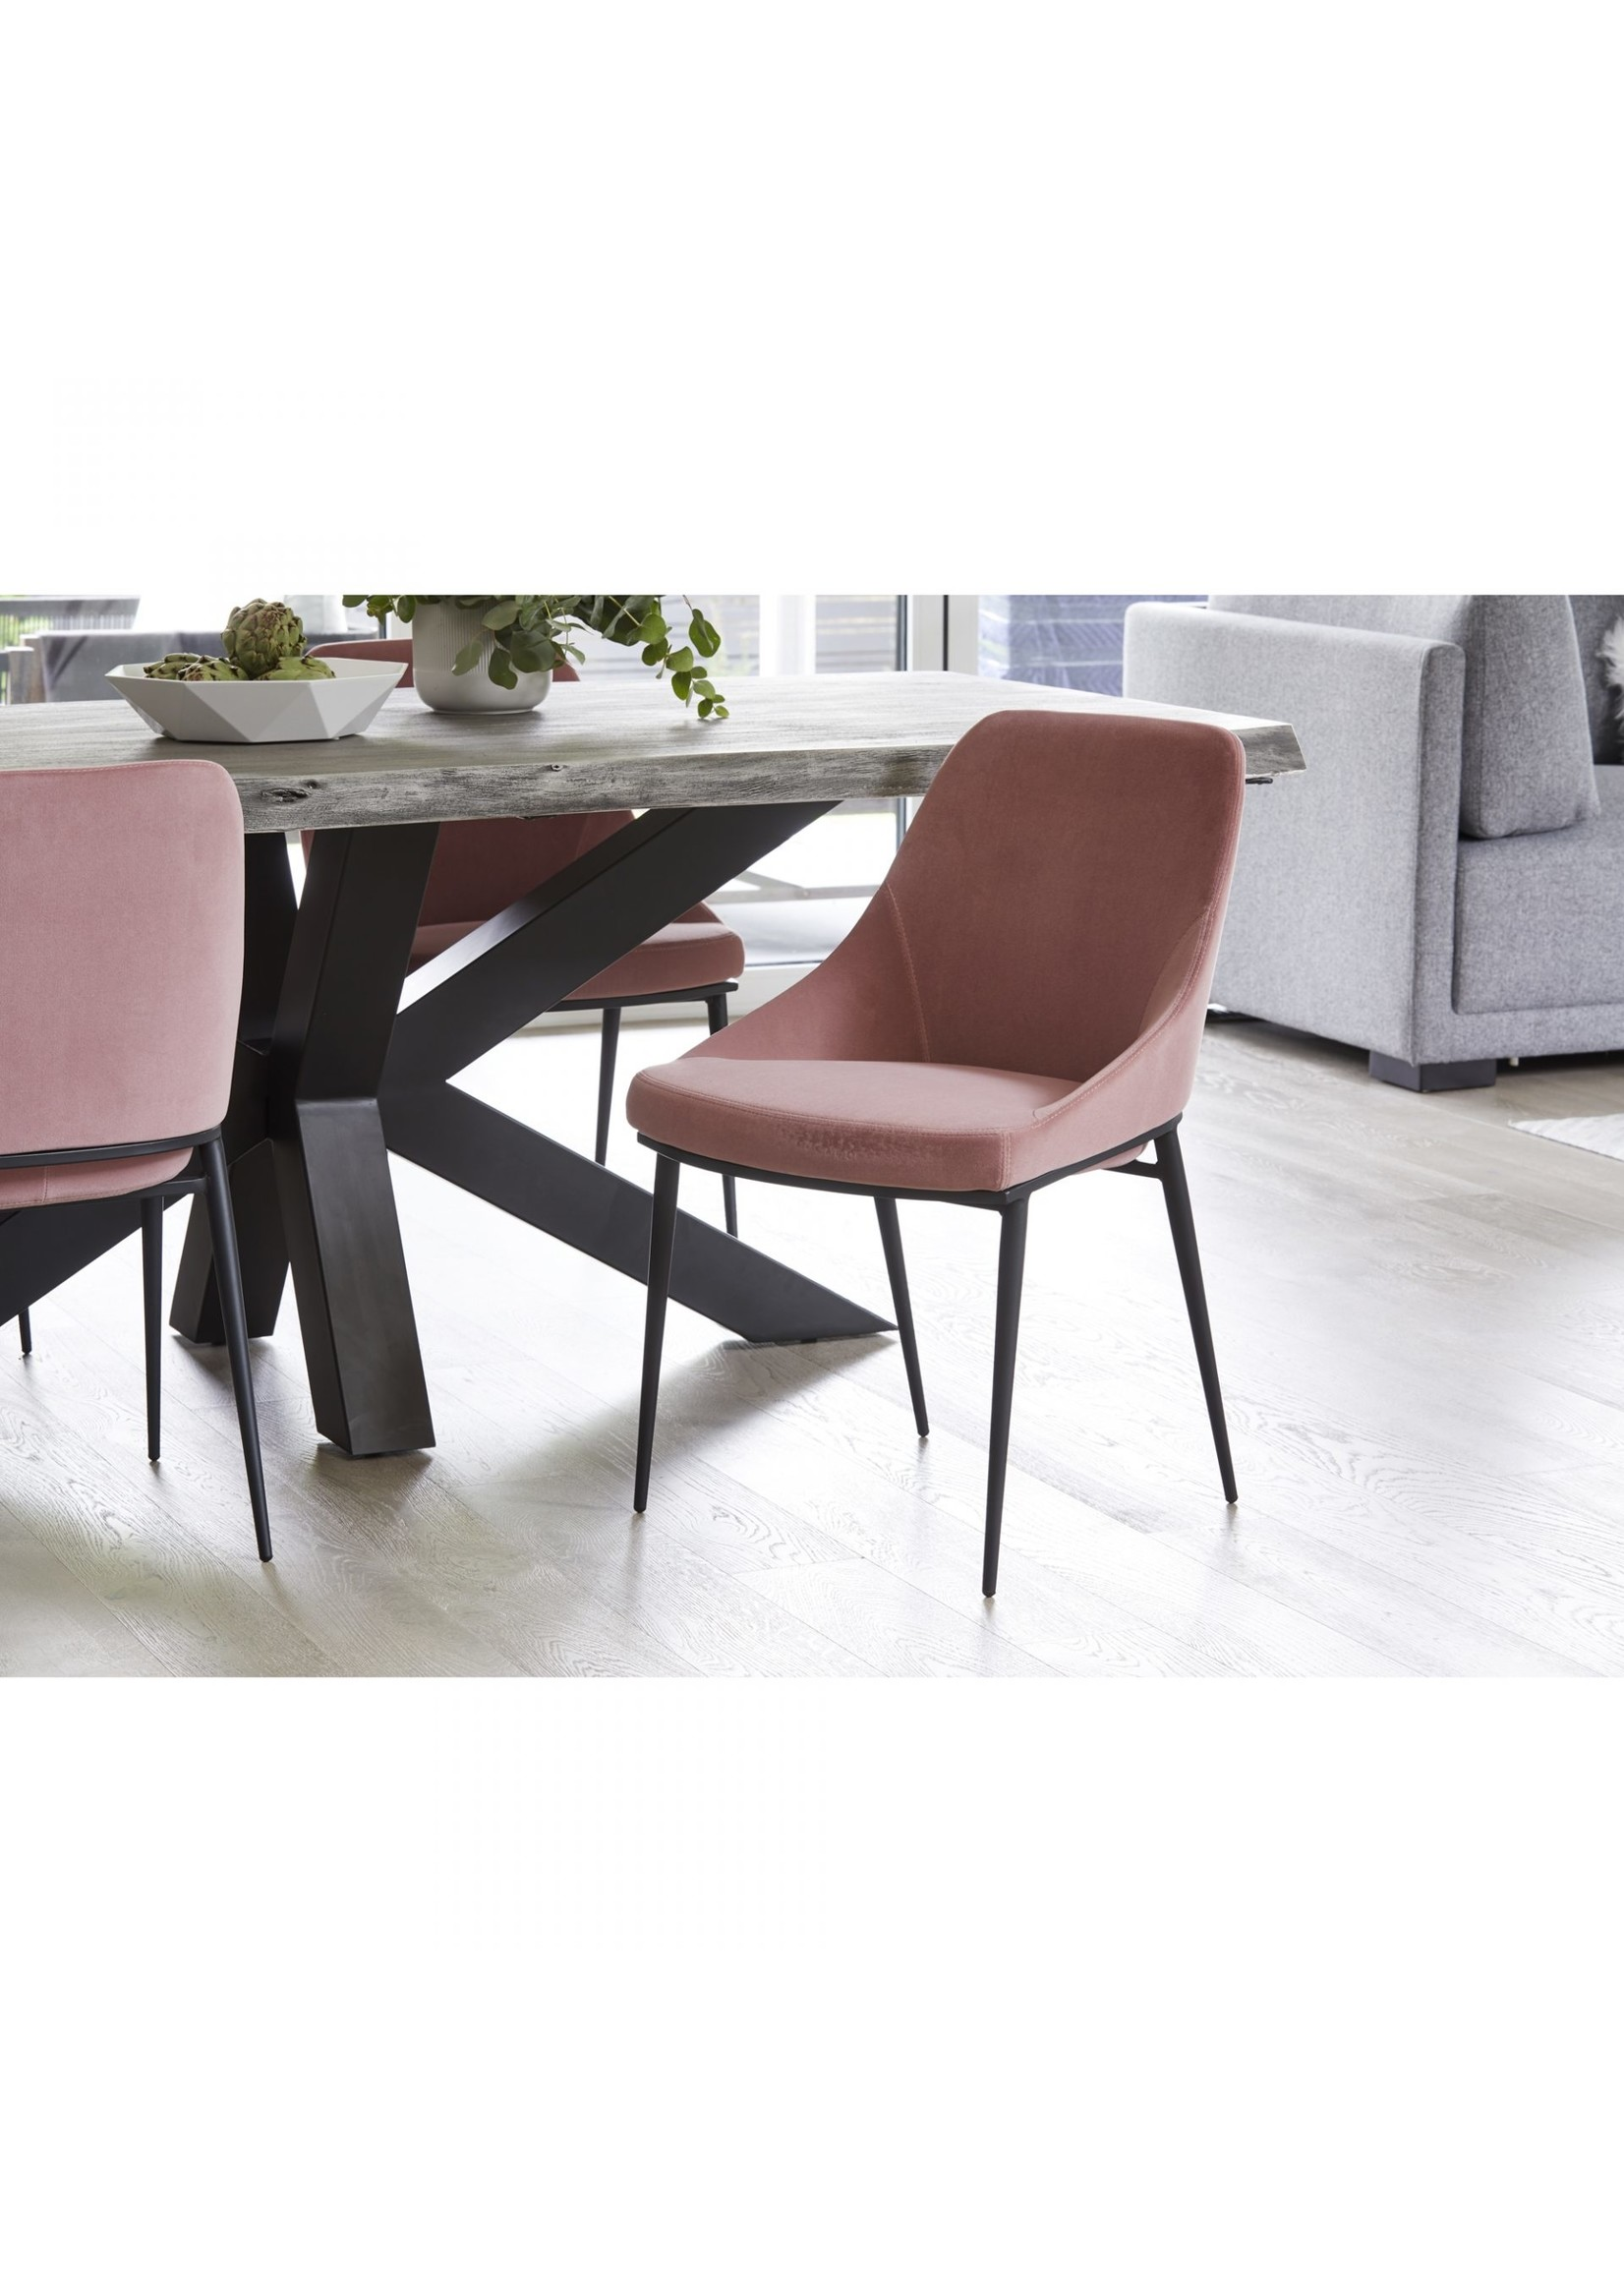 Moes Home Collection MOES Sedona Dining Chair Pink Velvet